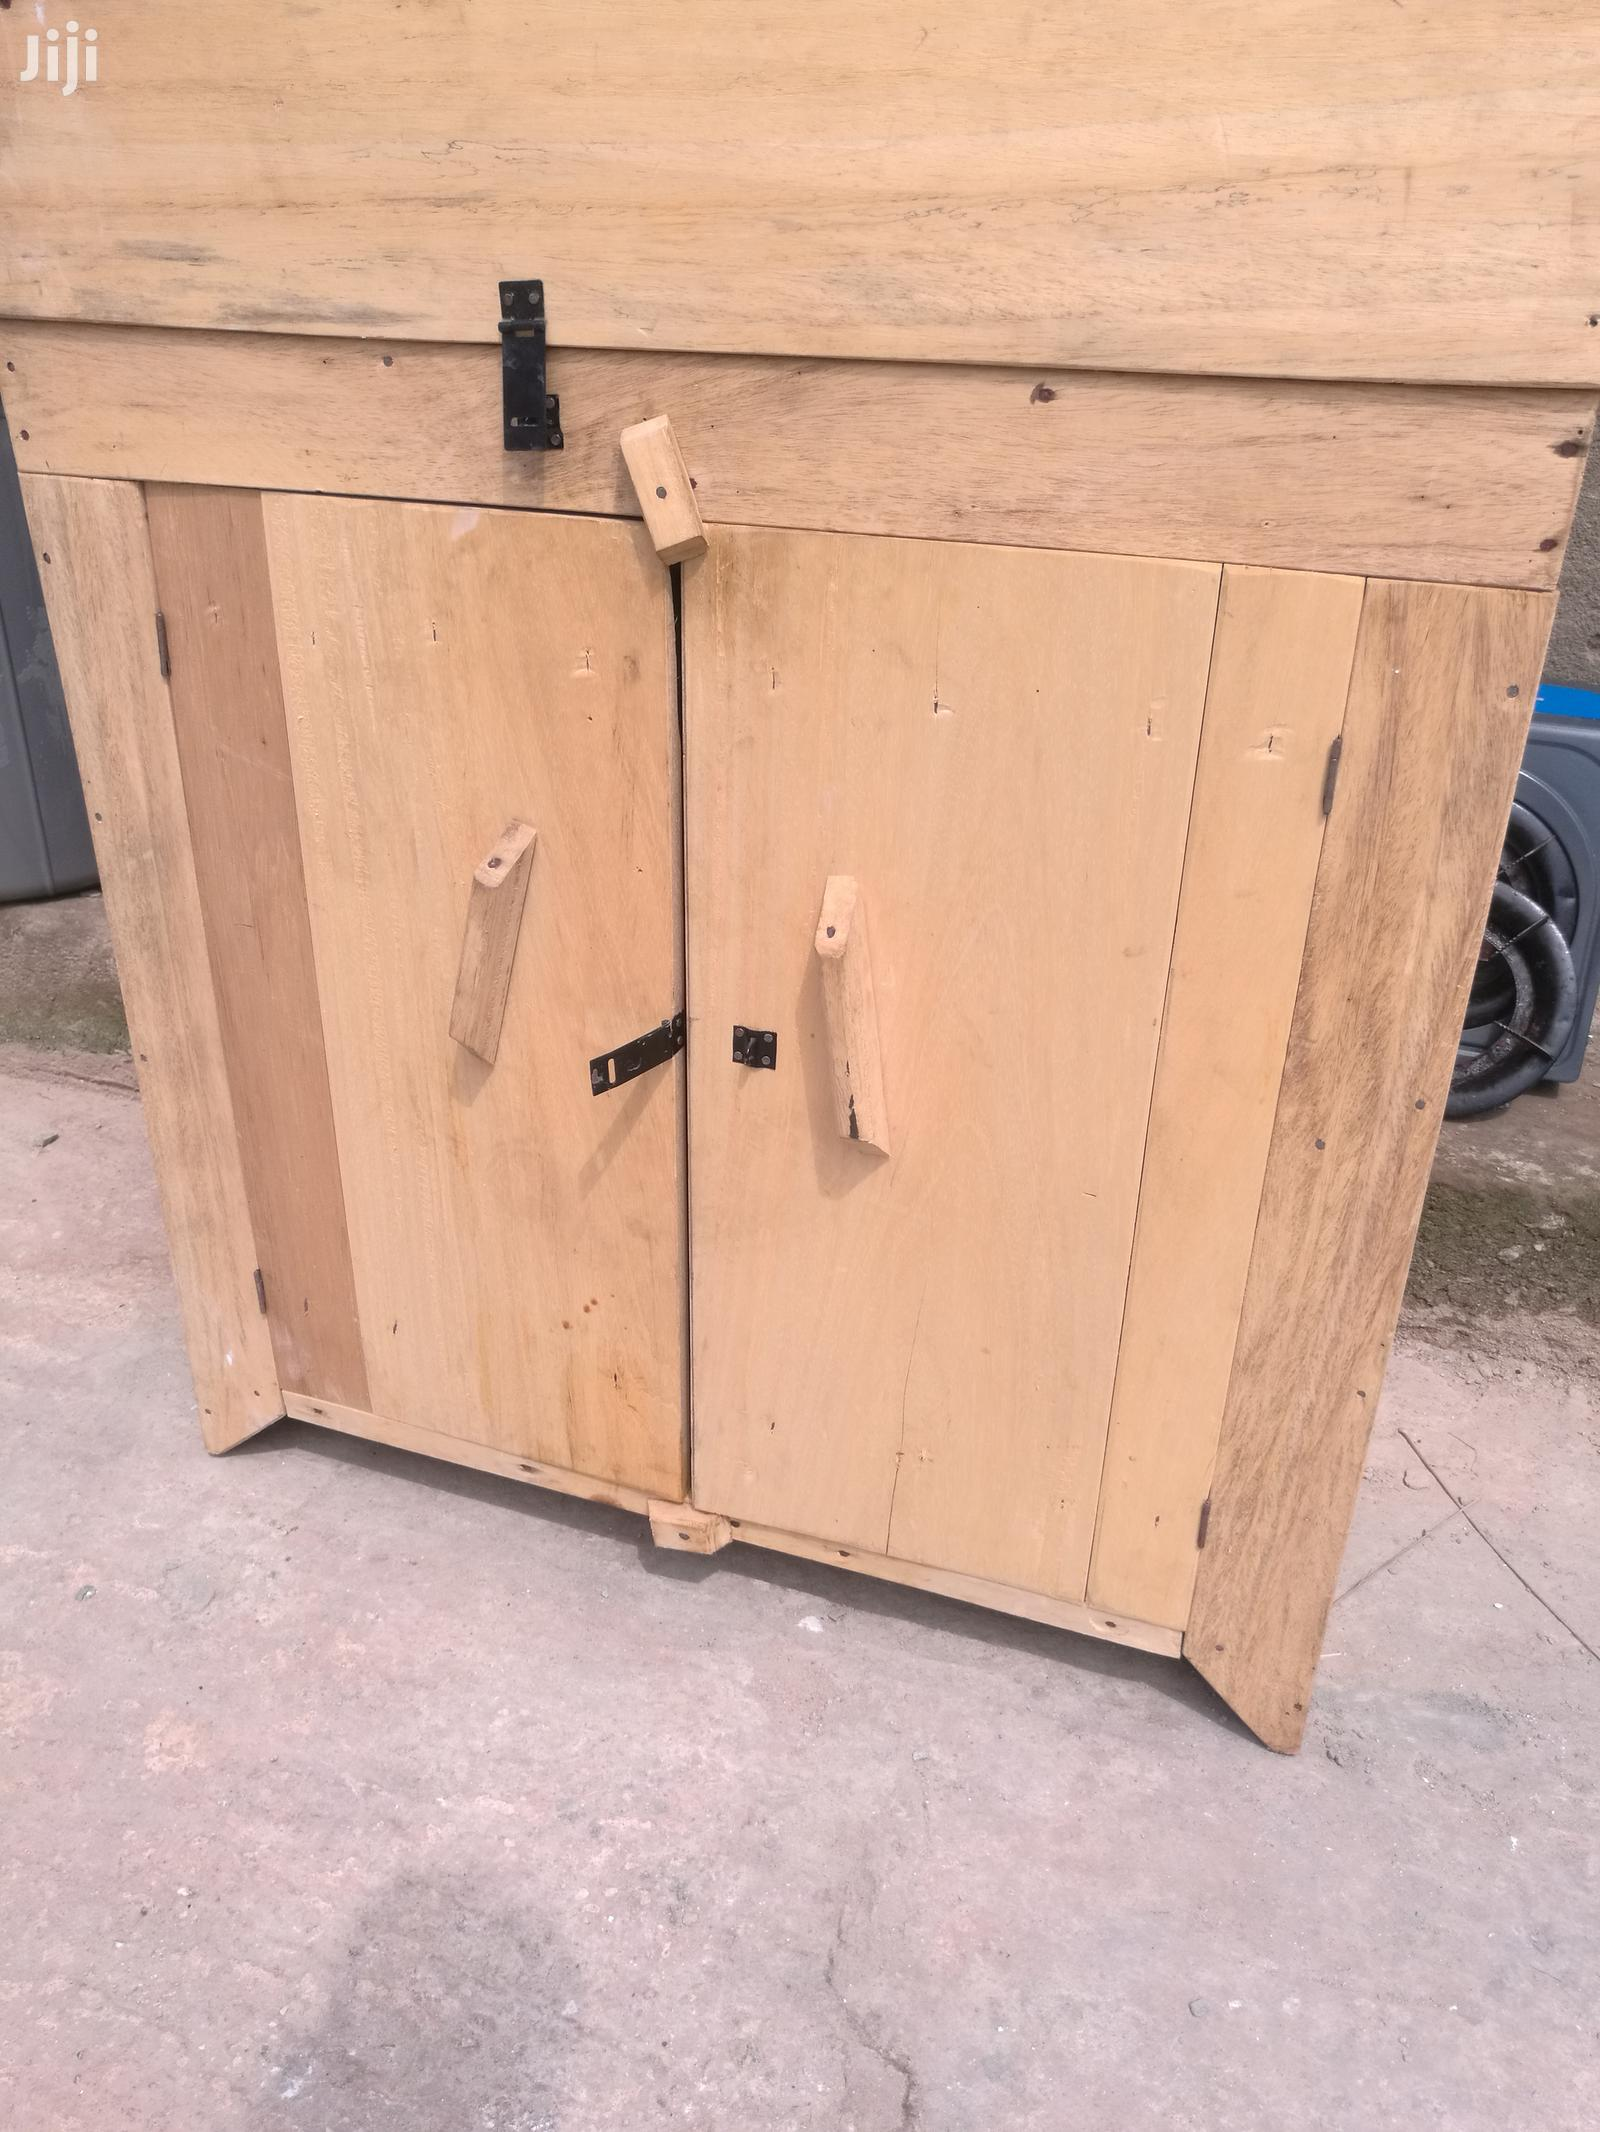 A Very Neat And New Wooden Kitchen Cabinet In Adenta